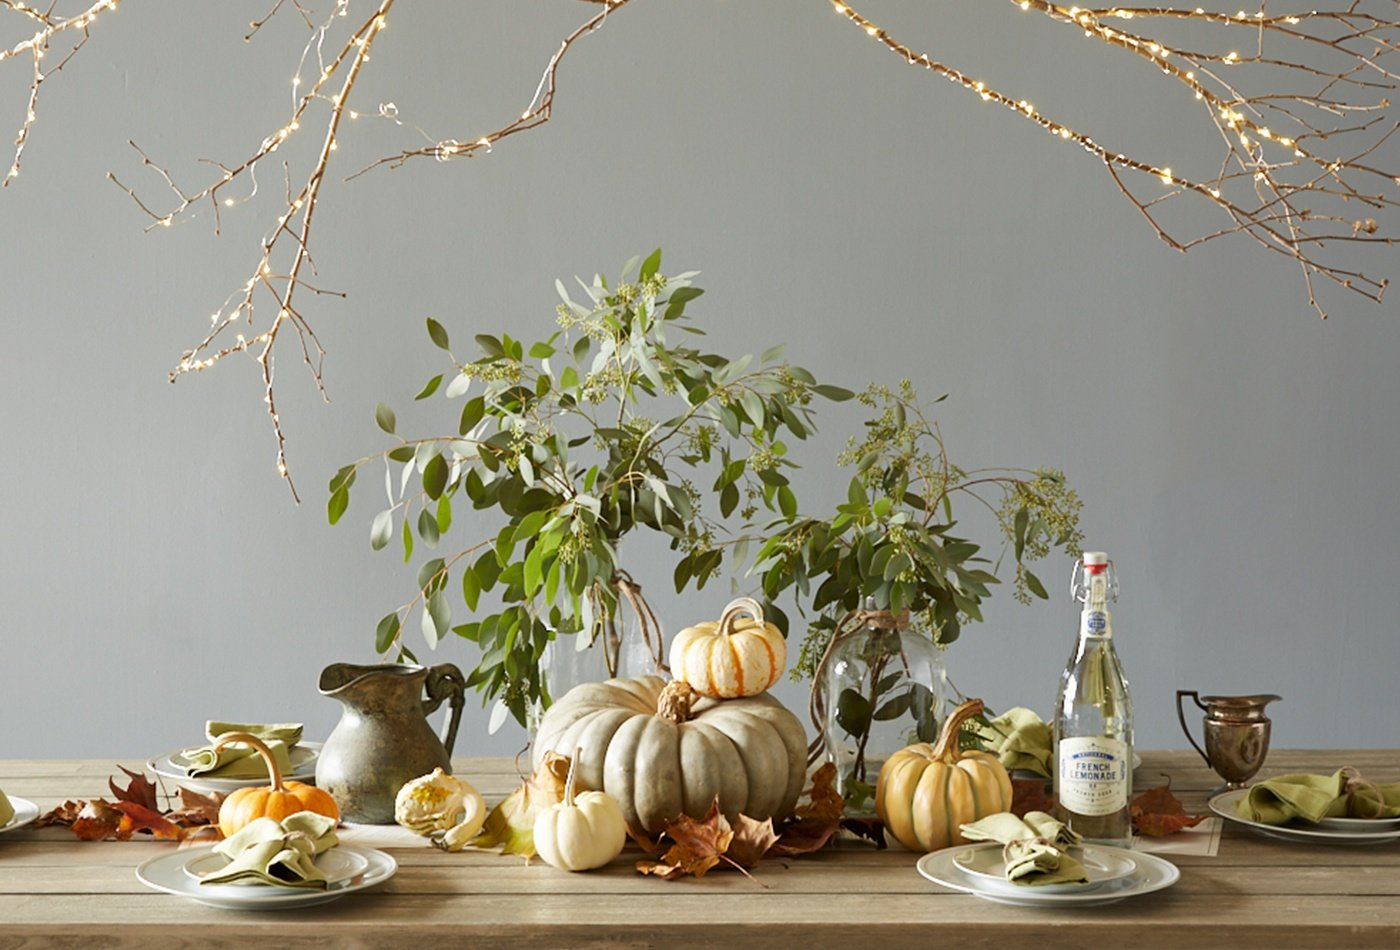 forage-table-setting-plants-branches-lights